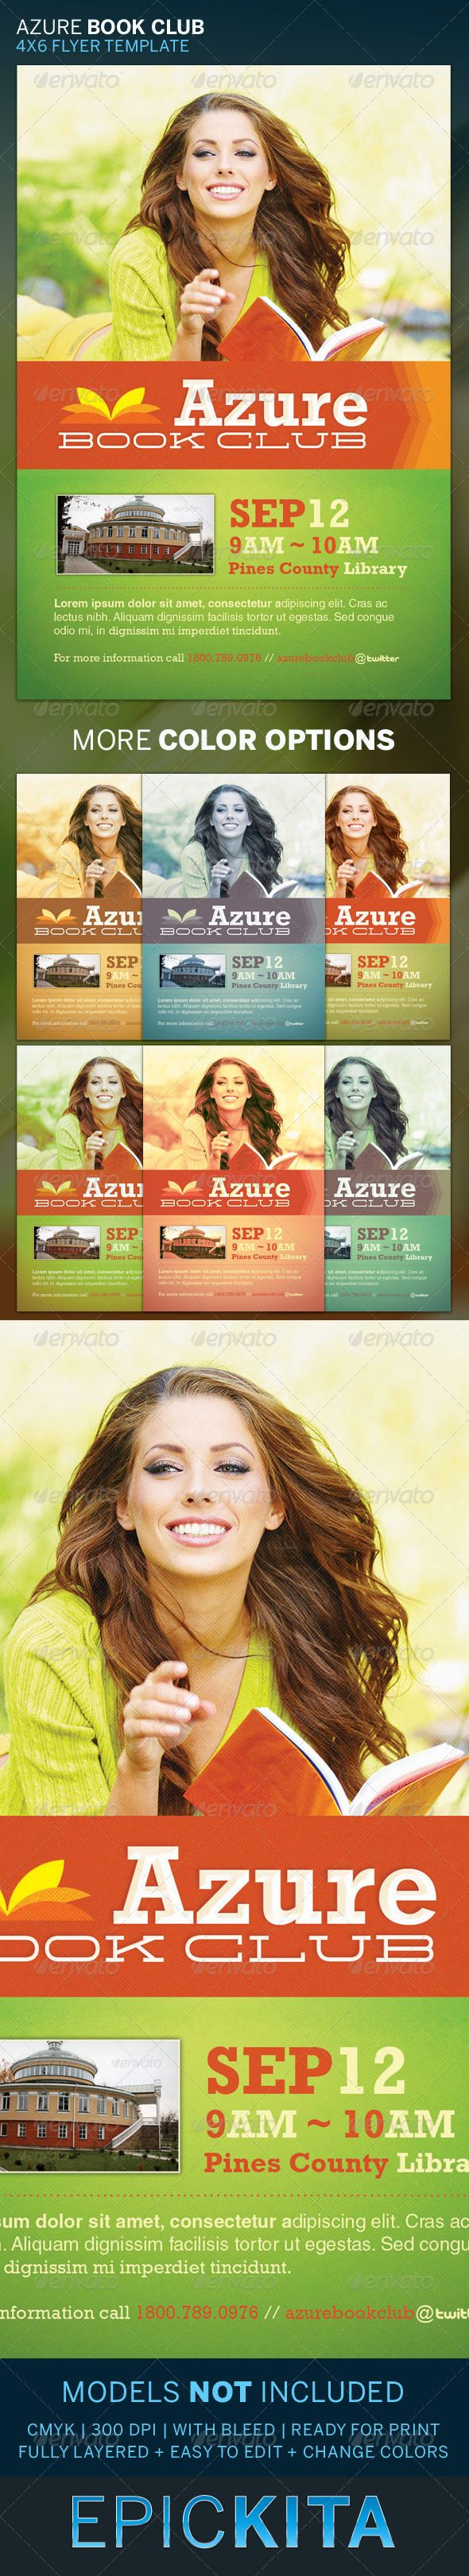 1000 images about community events templates on pinterest for Book signing poster template